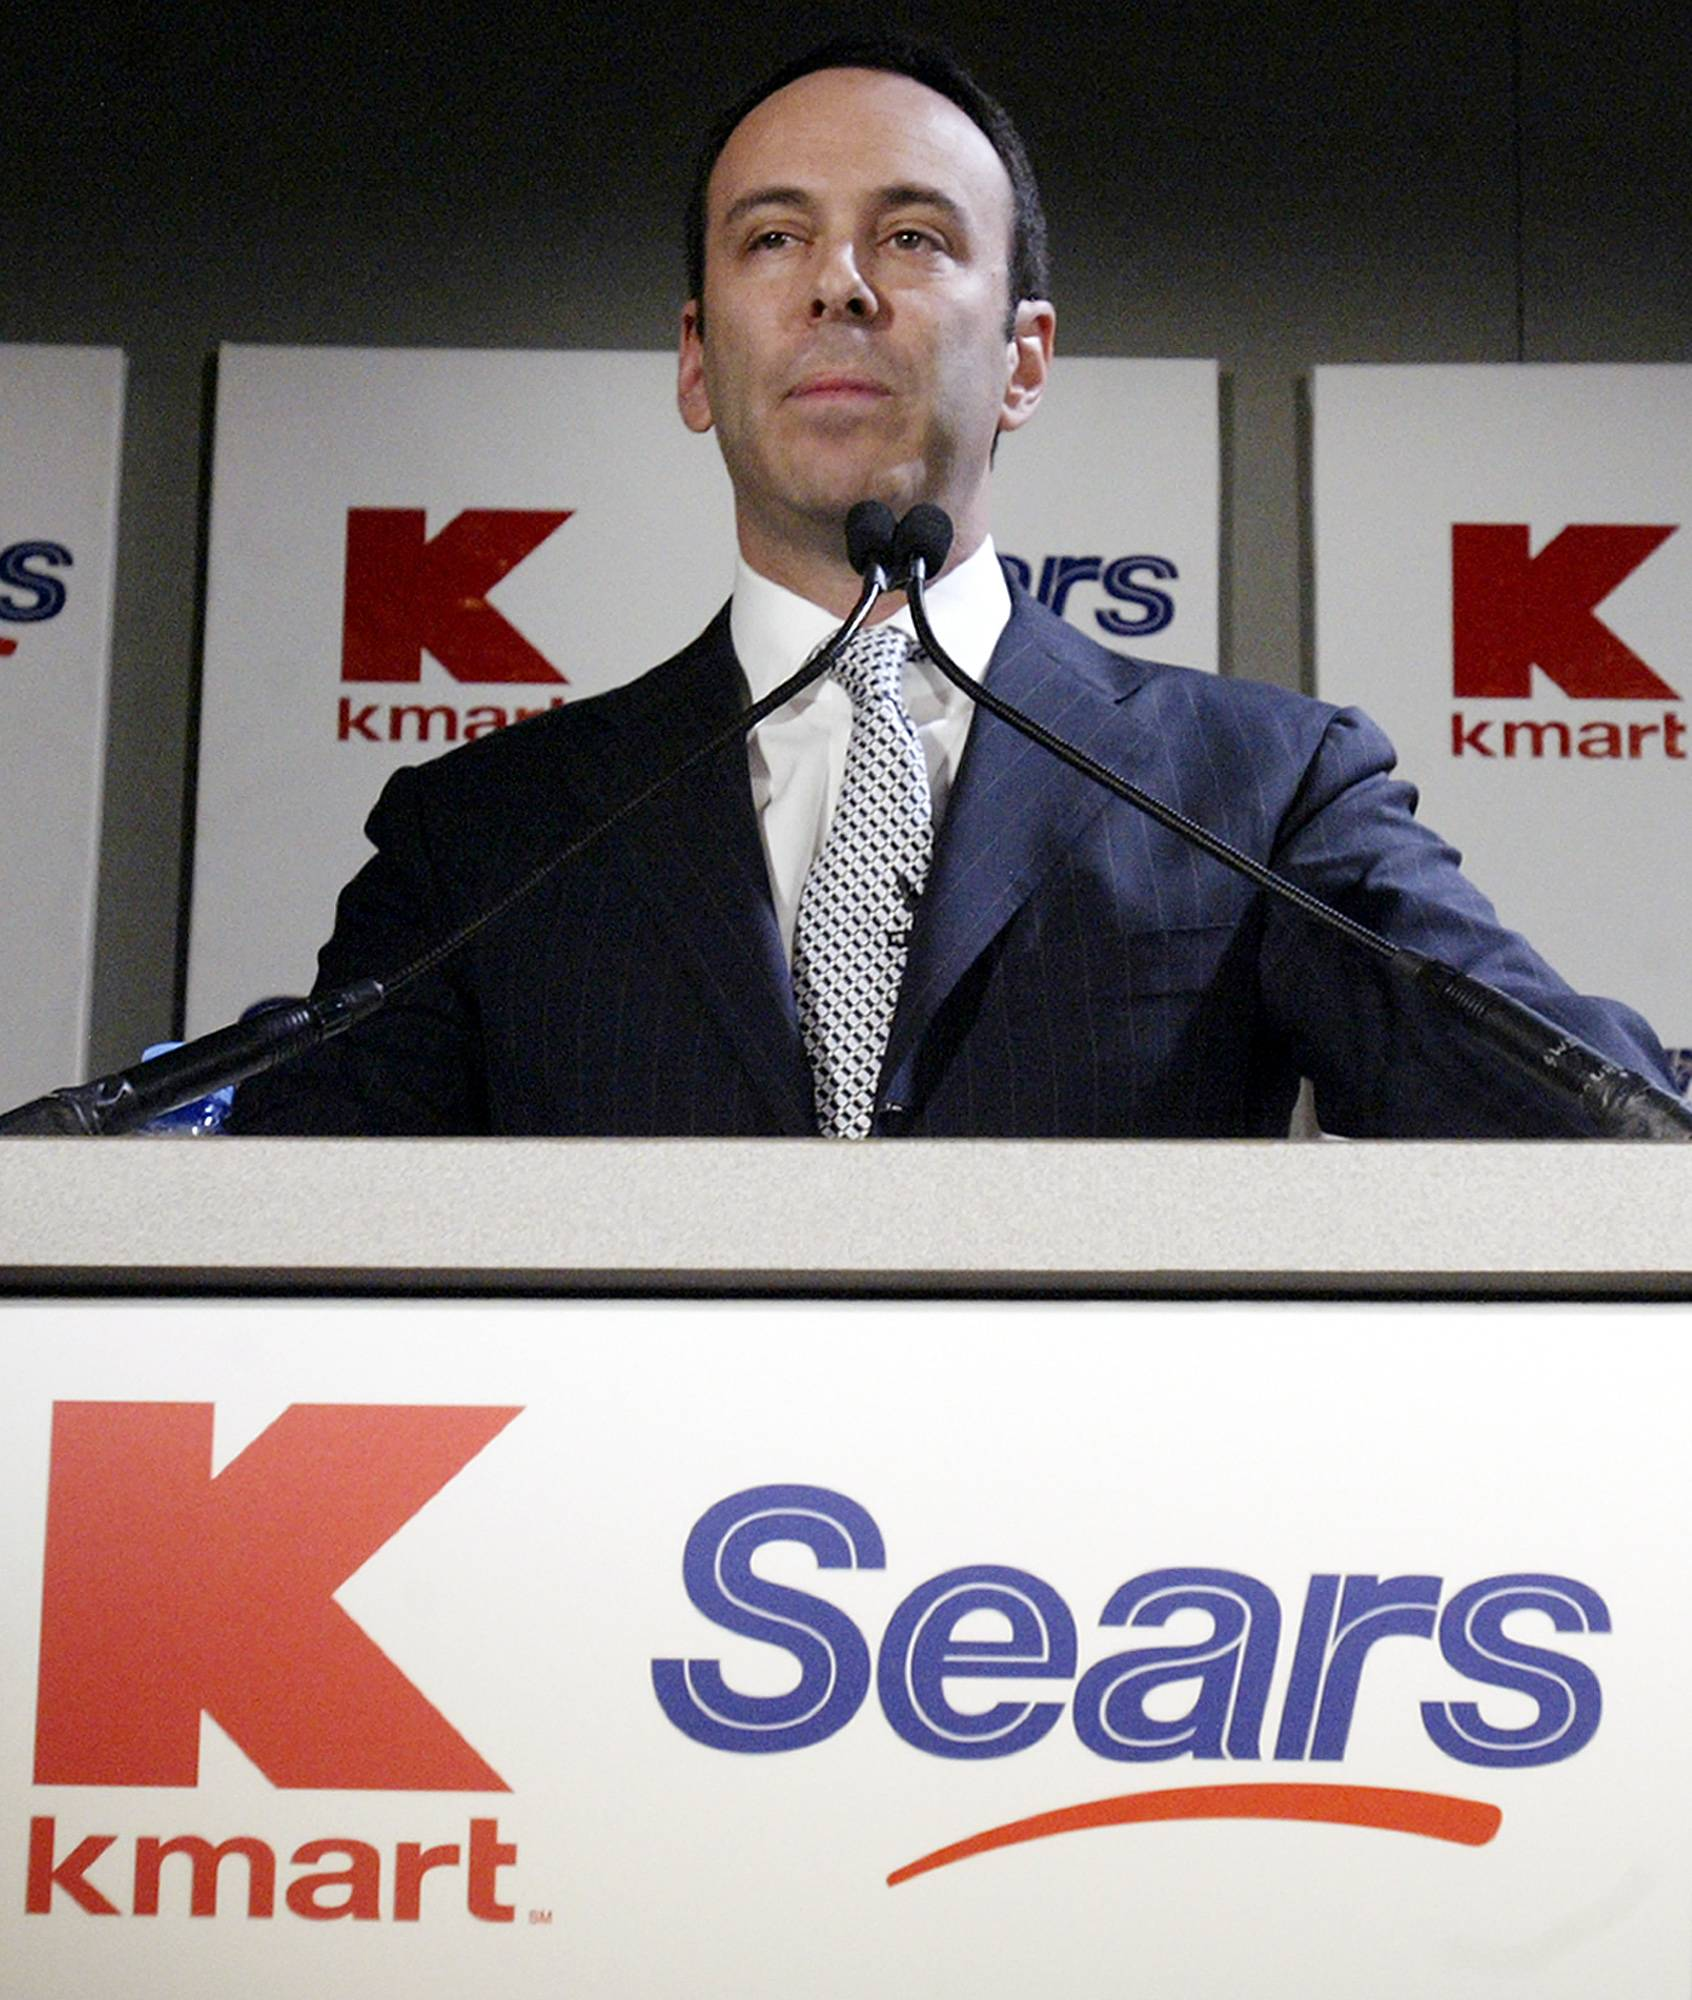 The hedge fund owned by Sears Holdings Corp. CEO Eddie Lampert is urging the retailer's board to sell more of its real estate and restructure its debt, as it seeks to avoid bankruptcy.